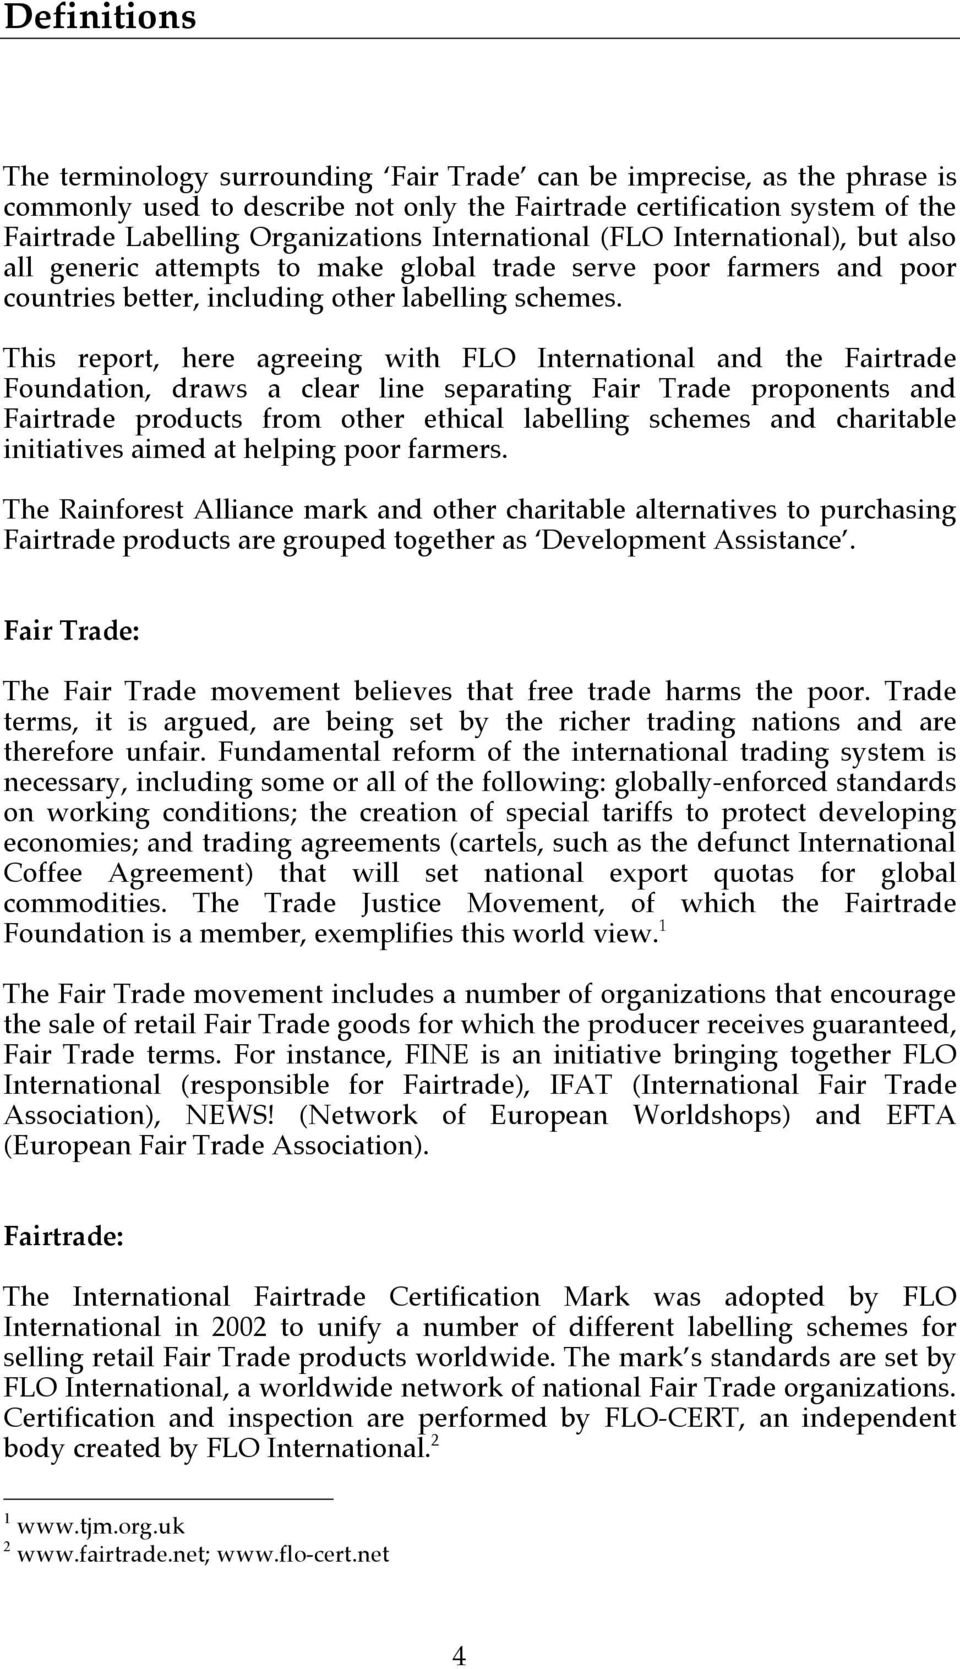 This report, here agreeing with FLO International and the Fairtrade Foundation, draws a clear line separating Fair Trade proponents and Fairtrade products from other ethical labelling schemes and